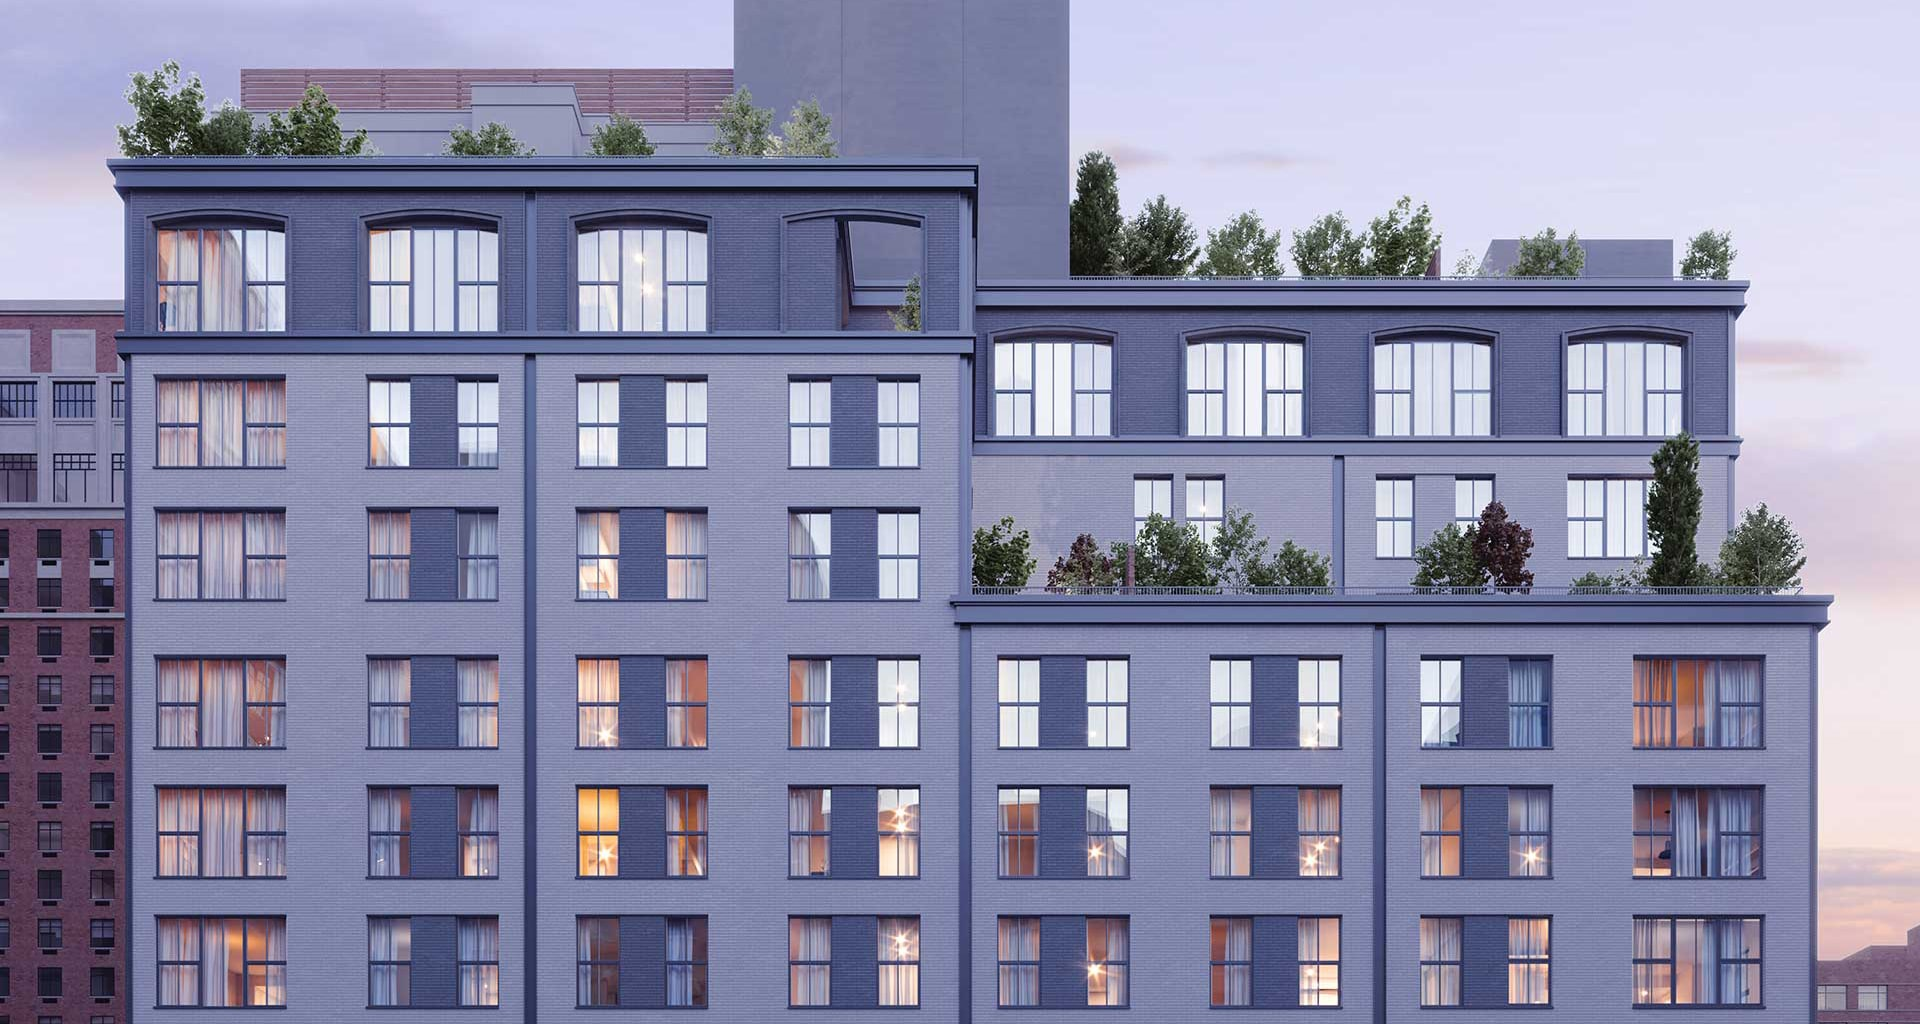 Exterior view of top floors at The Symon luxury condos in New York City. Tiered rooftop terraces with brown and grey brick.